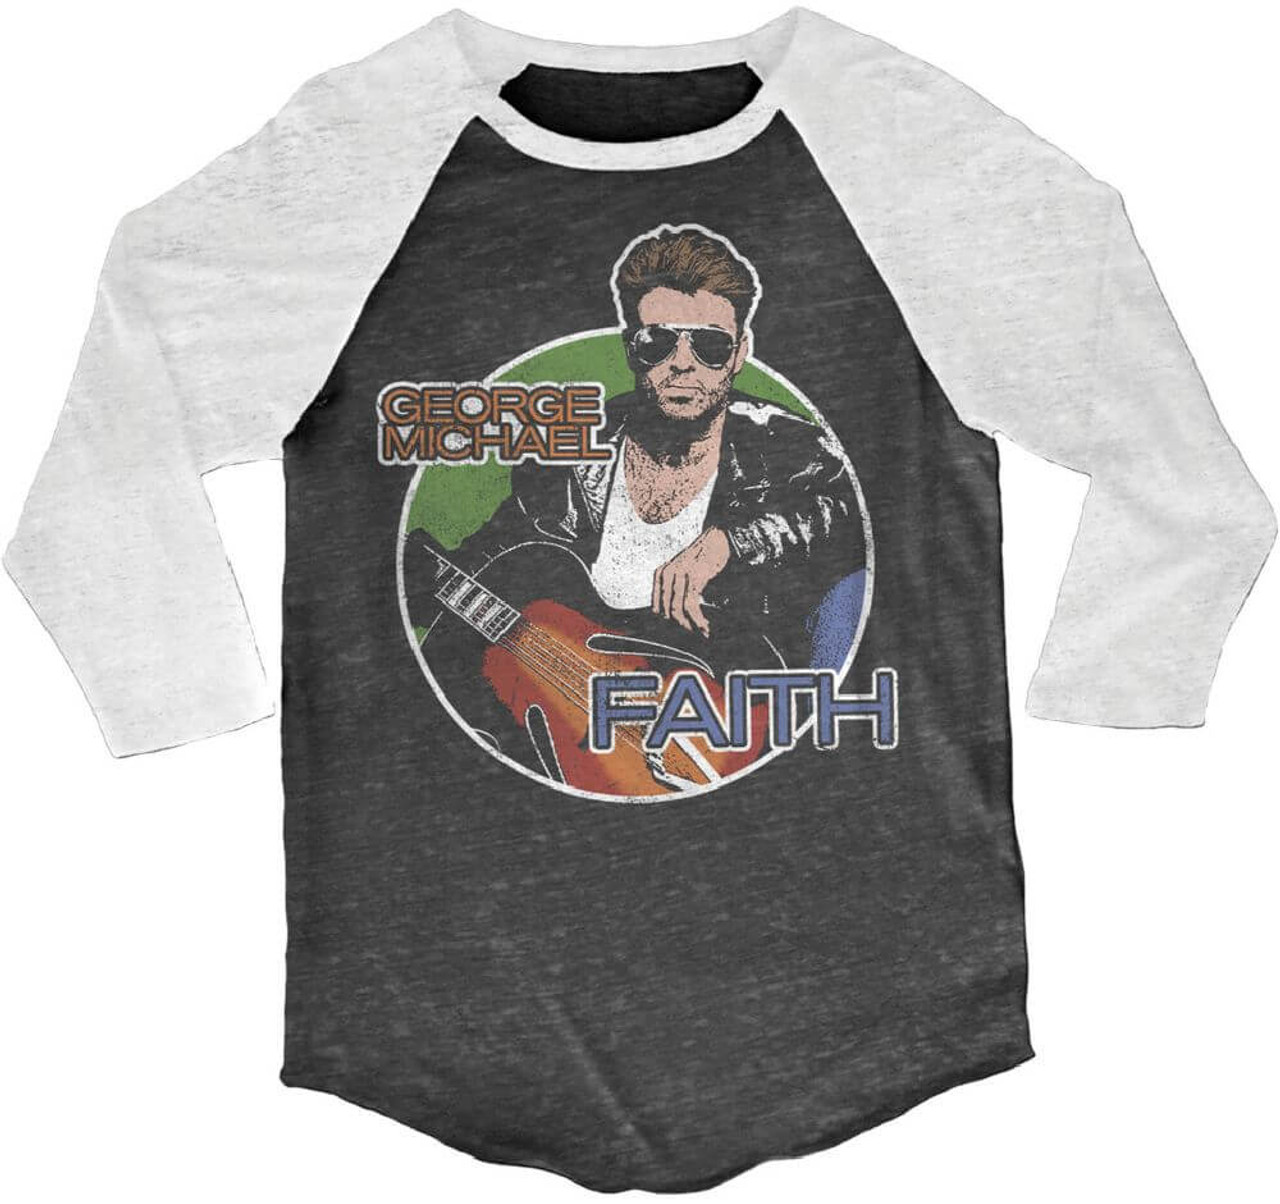 9944f181 George Michael Faith Drawing Black and White Vintage Raglan Baseball Jersey  T-shirt